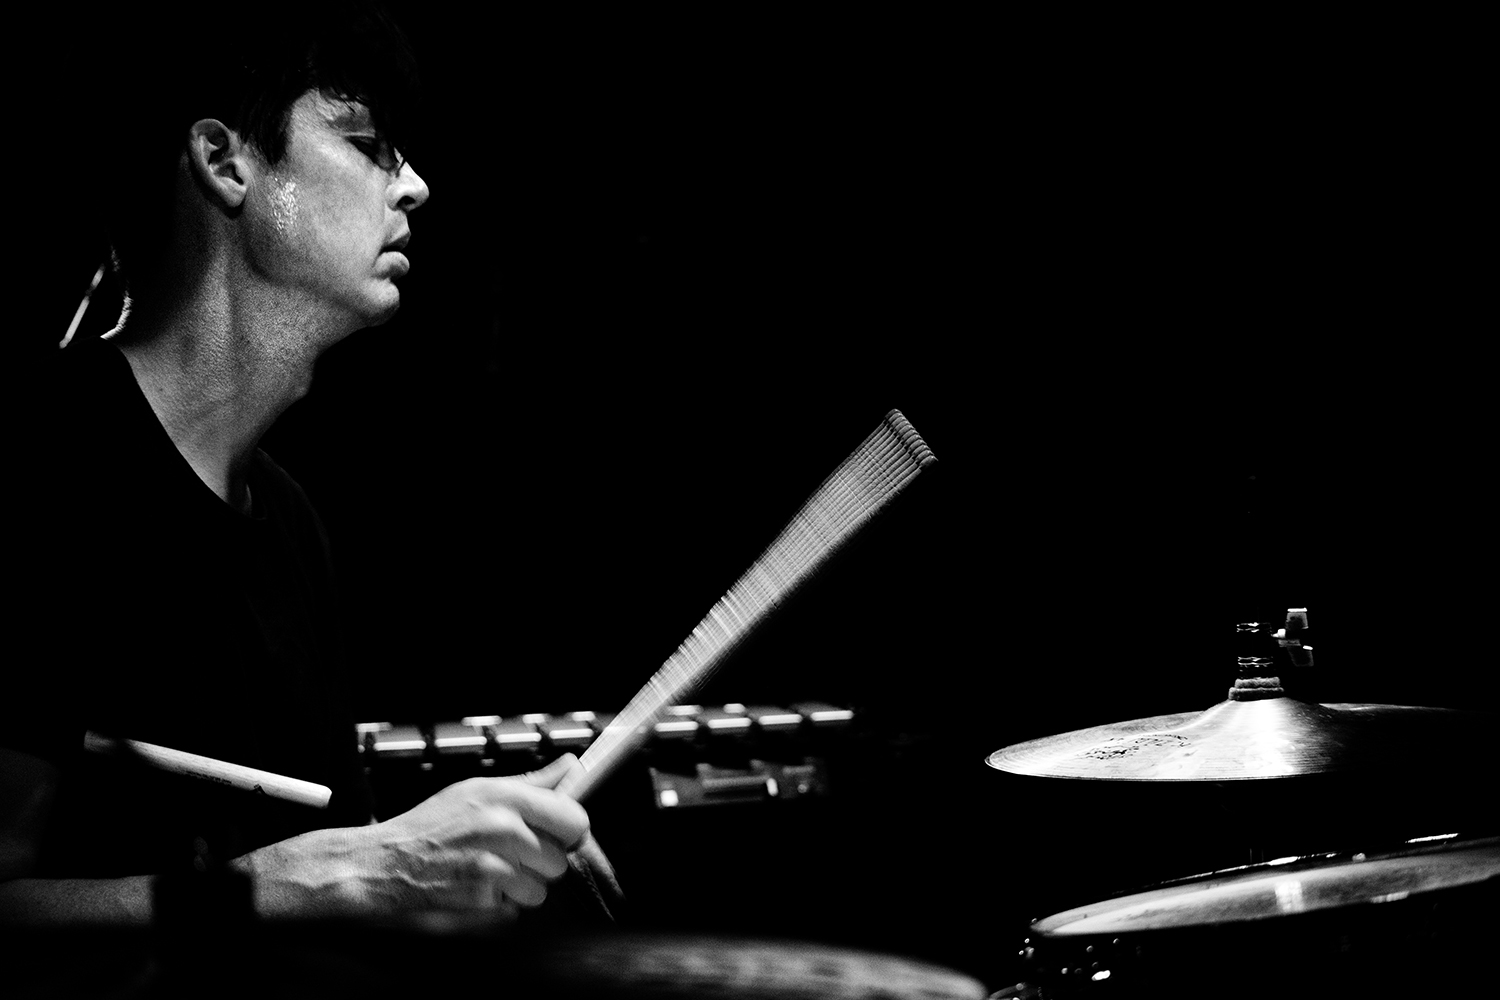 Ches Smith by Laurent Orseau - Concert - Les Ateliers Claus - Brussels, Belgium #5